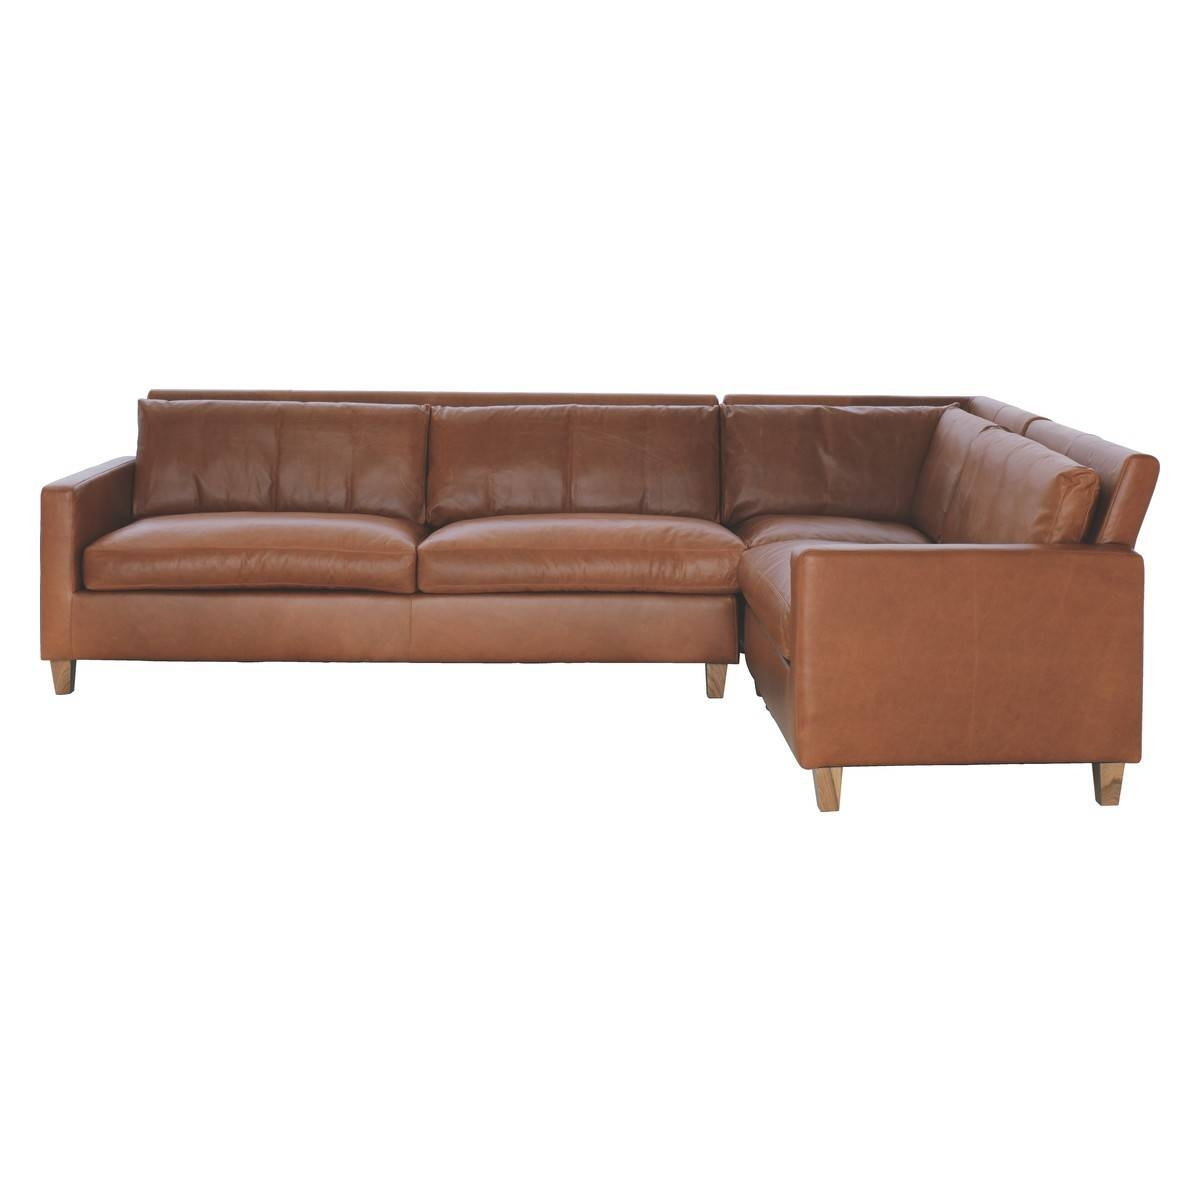 Sofas Center : Leather Corner Sofas And Sofasiena Brown Sofa Hand for Leather Corner Sofas (Image 28 of 30)